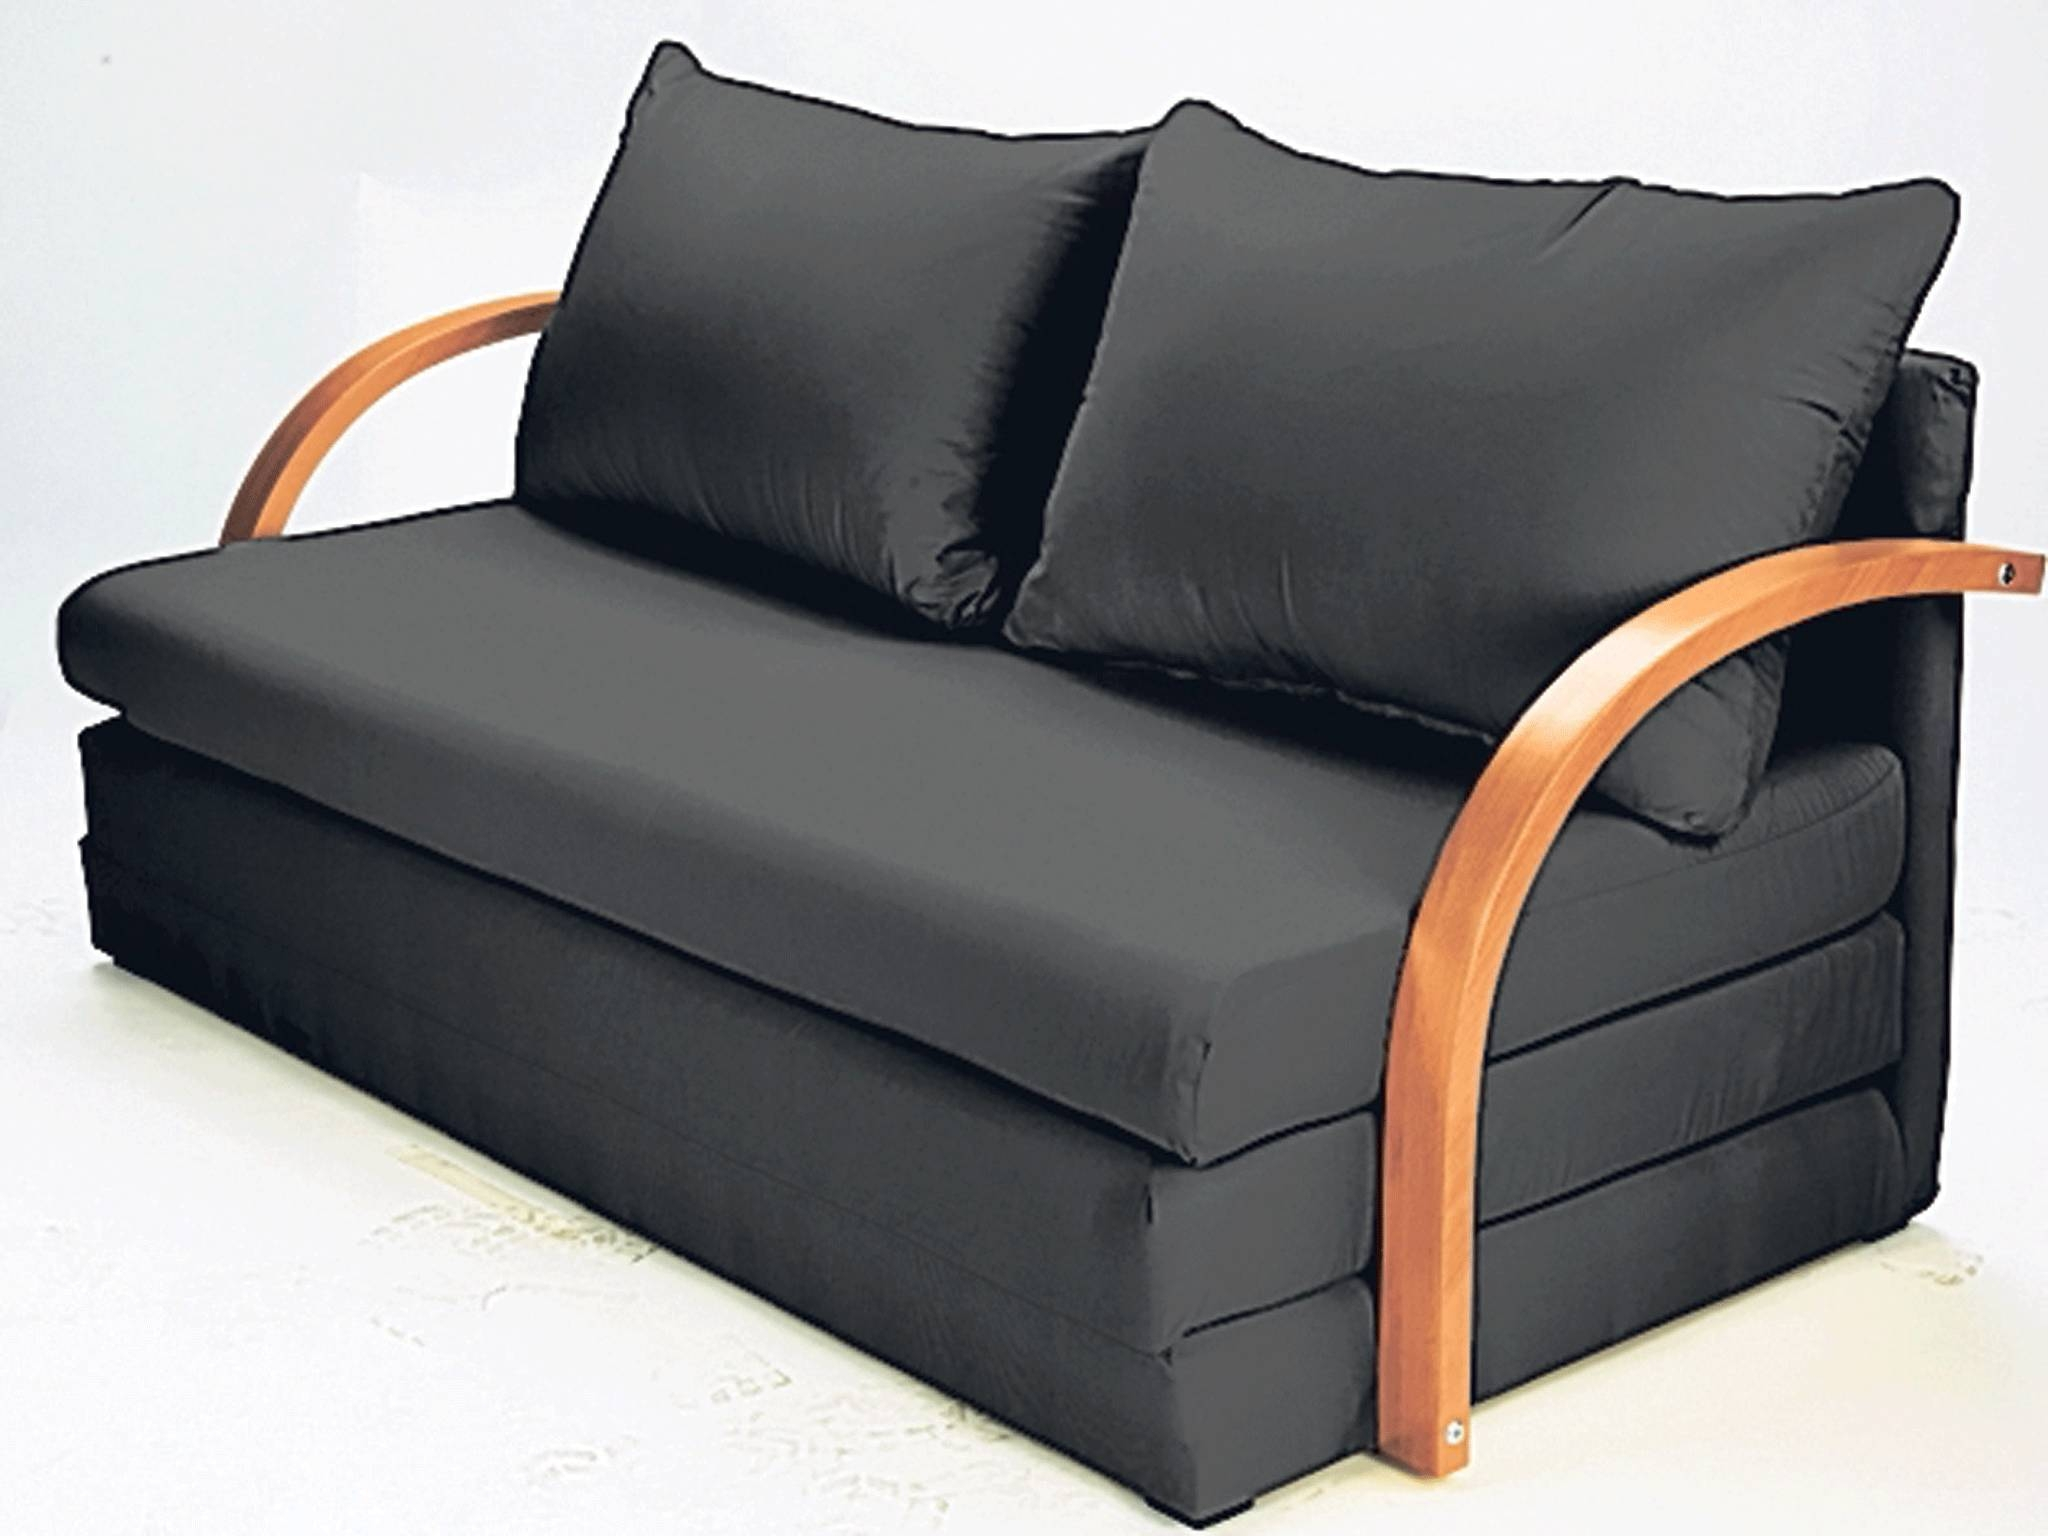 Unusual Sofas. Interesting Unusual Sofas Find Sofas Sofa Beds pertaining to Unusual Sofa (Image 23 of 23)